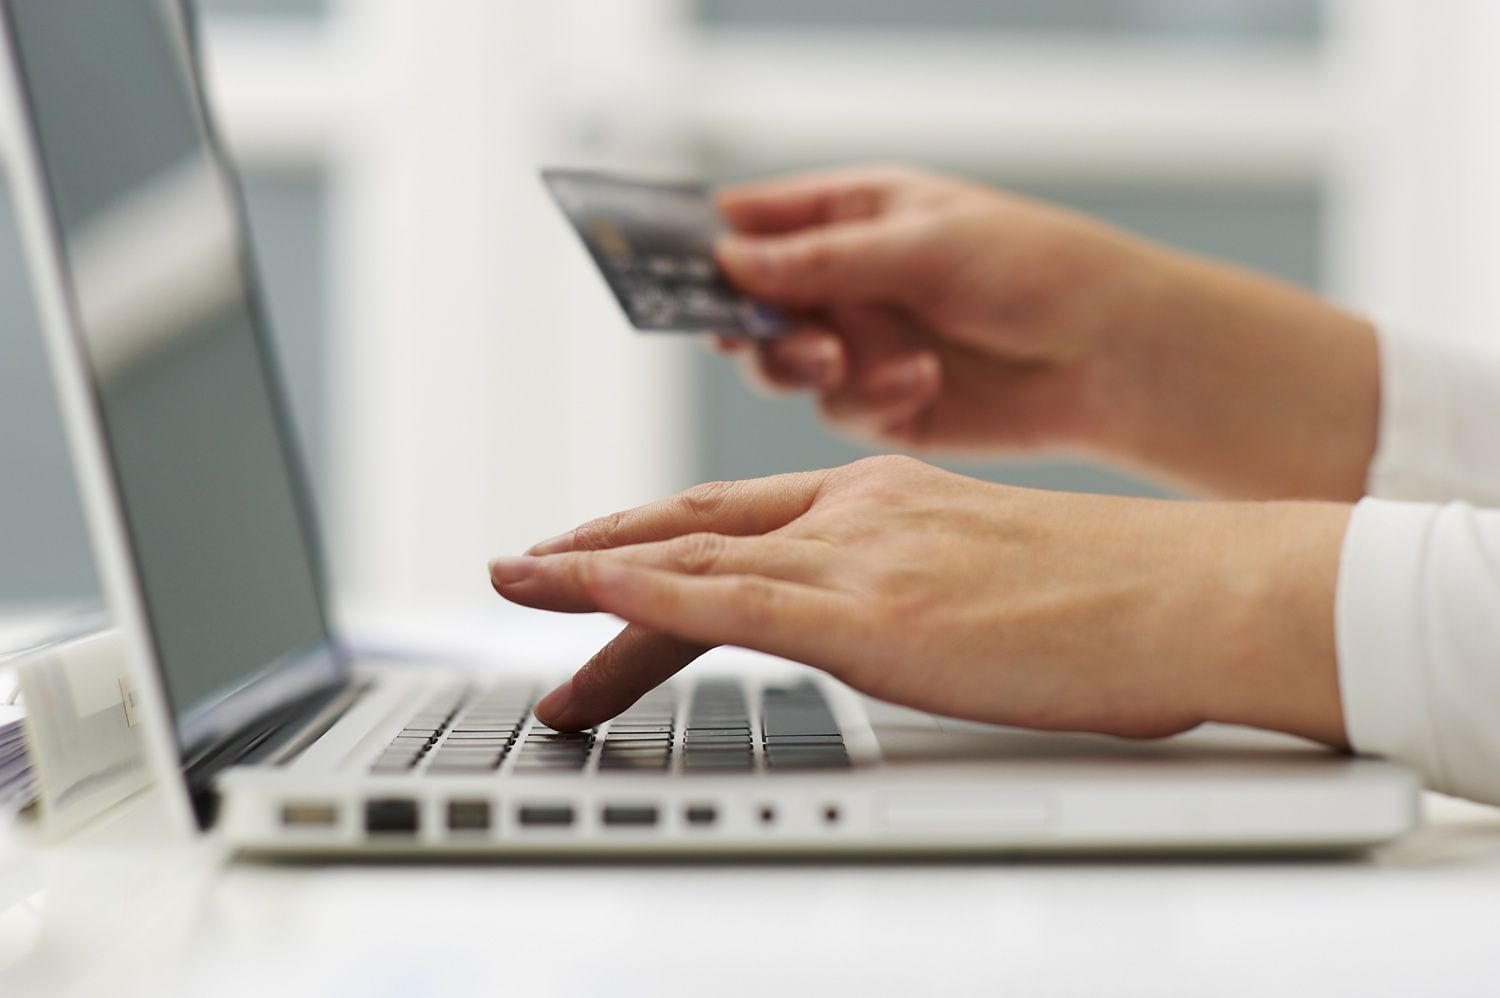 Close-up of woman's hands holding a credit card and entering info on a laptop